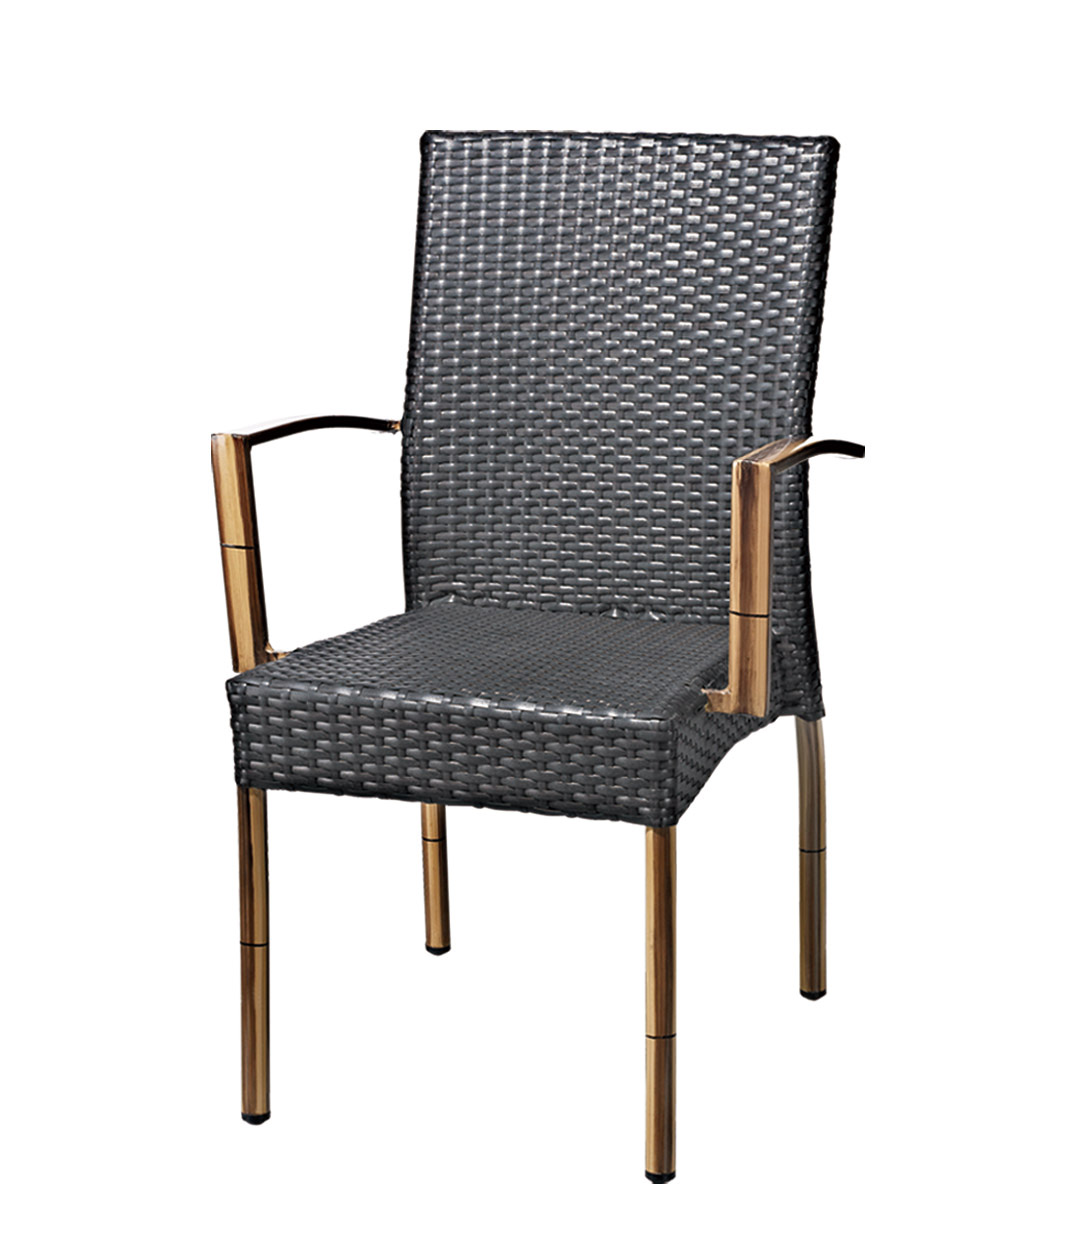 Tuwell-Best Tw3004 Aluminum Rattan Bar Chair Small Rattan Chairs-4